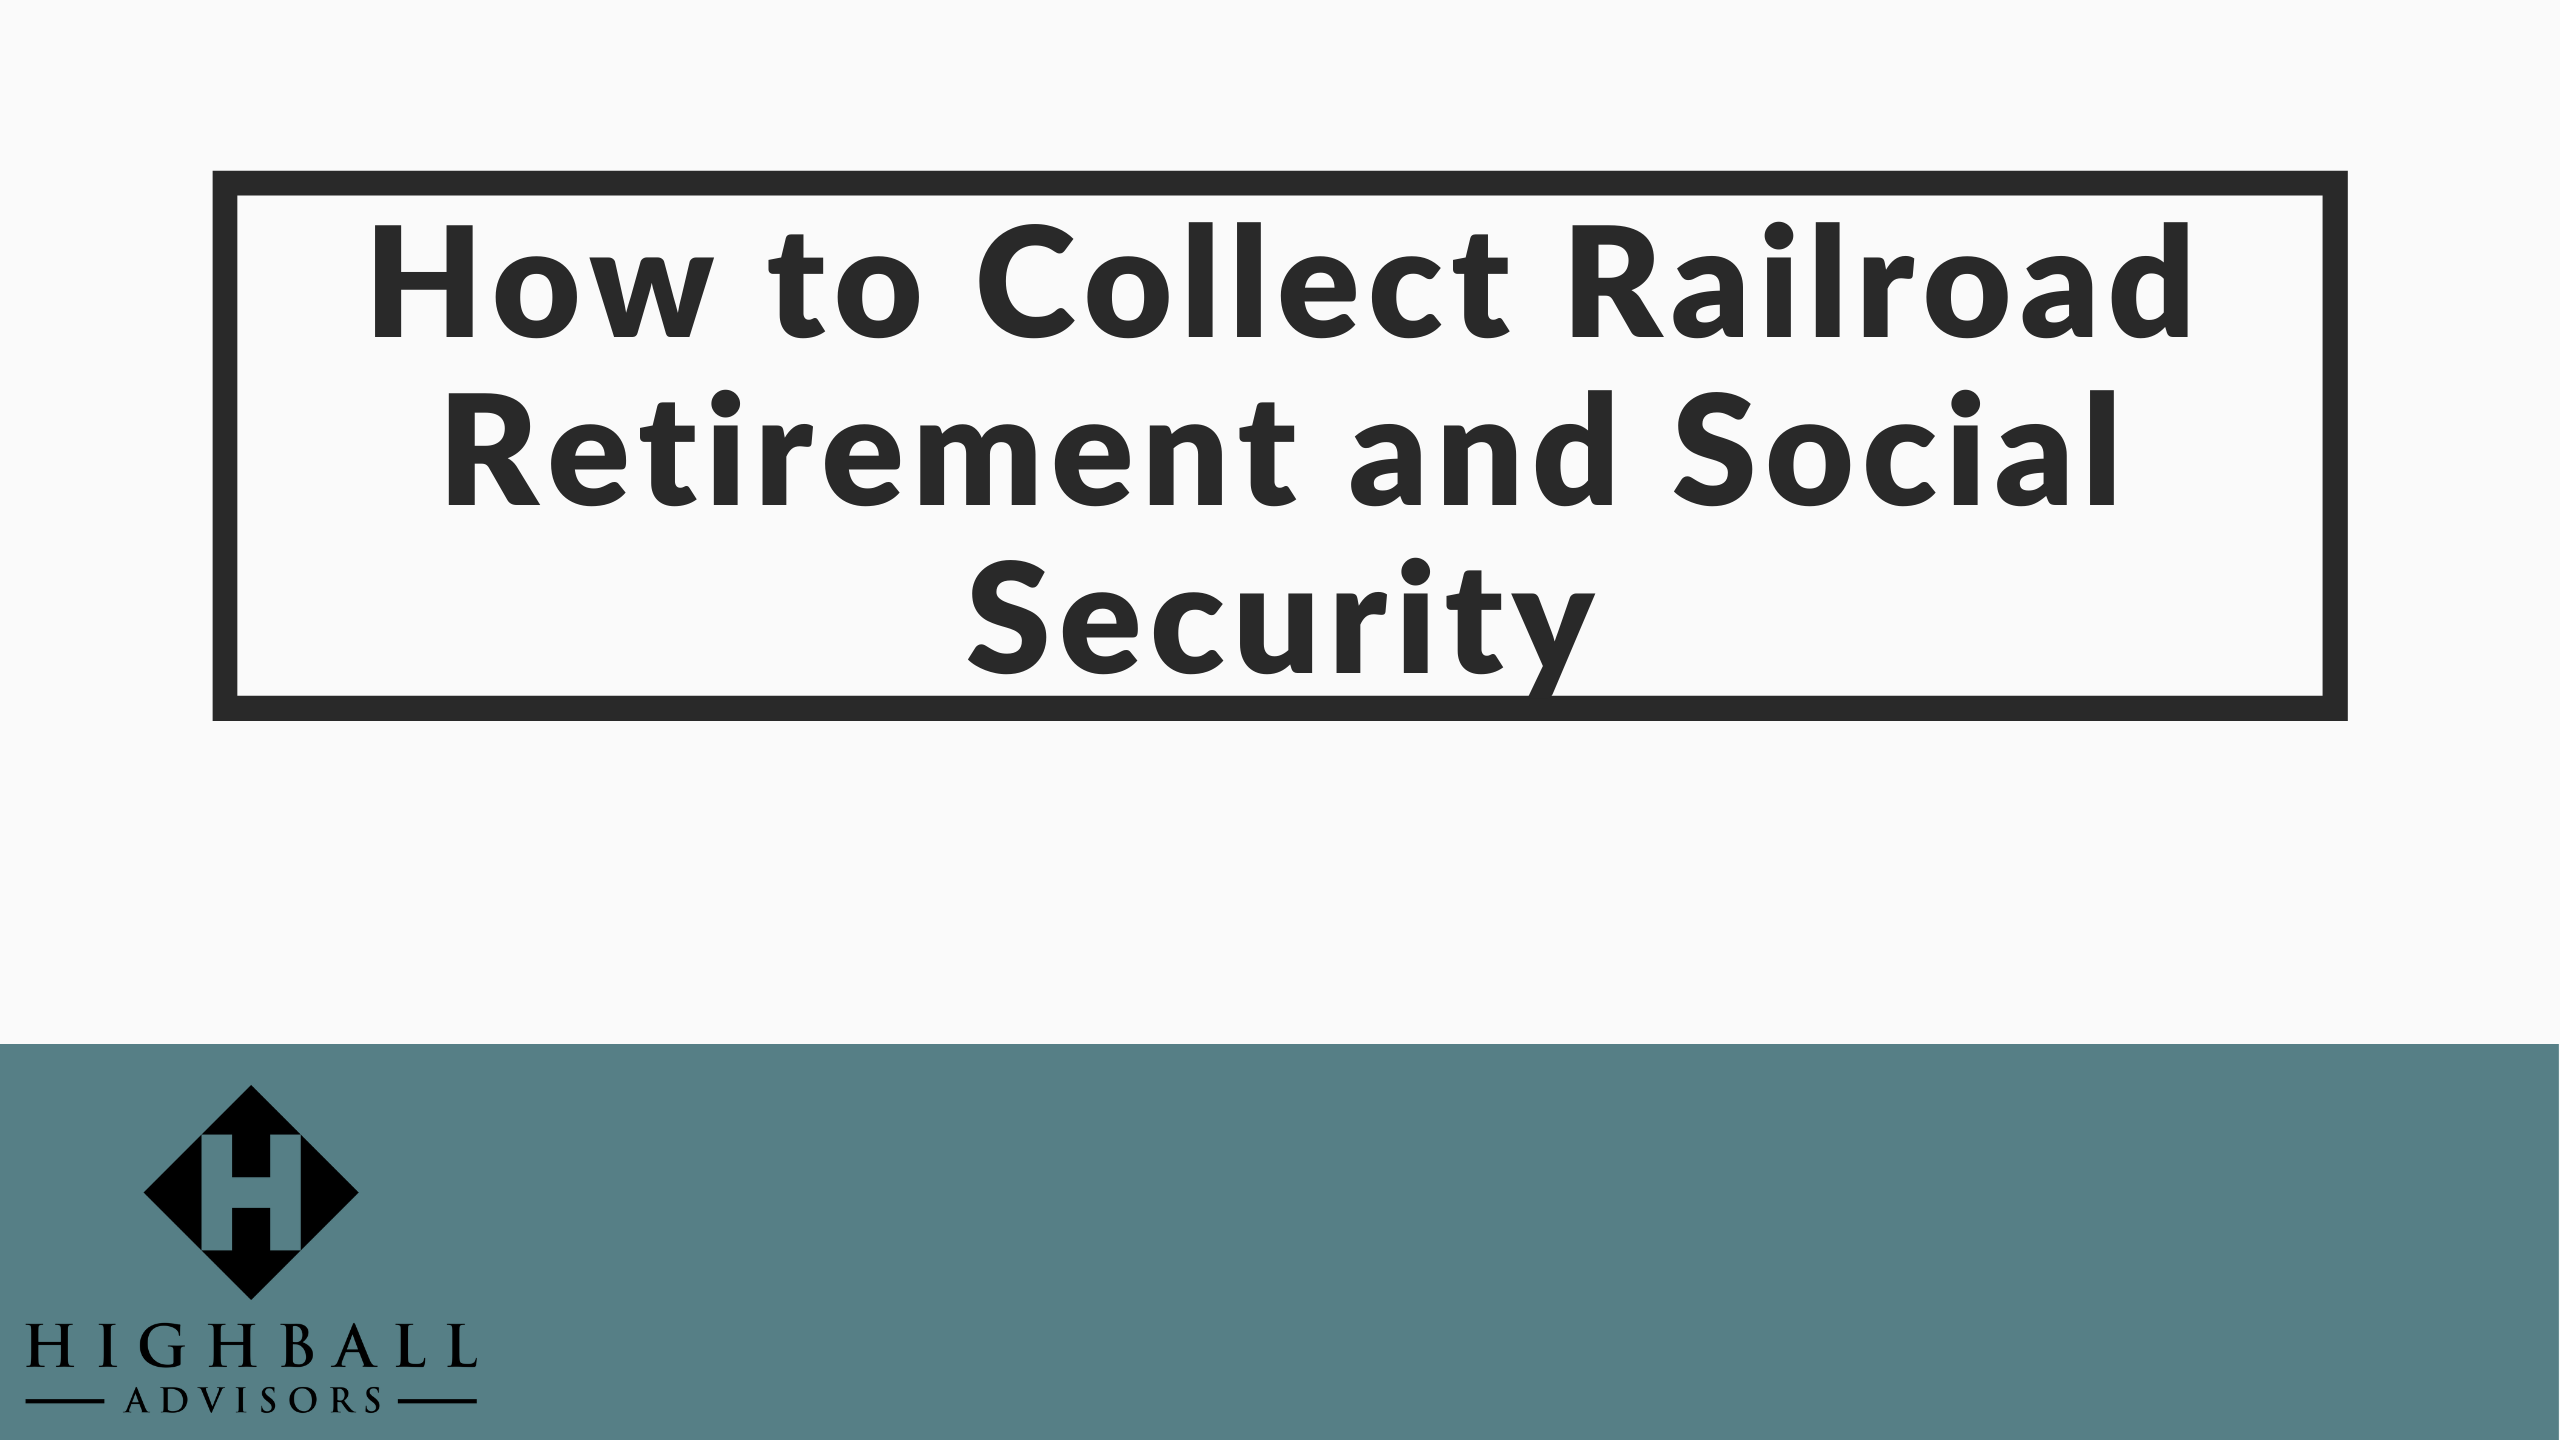 VIDEO: How to Collect Railroad Retirement and Social Security Thumbnail